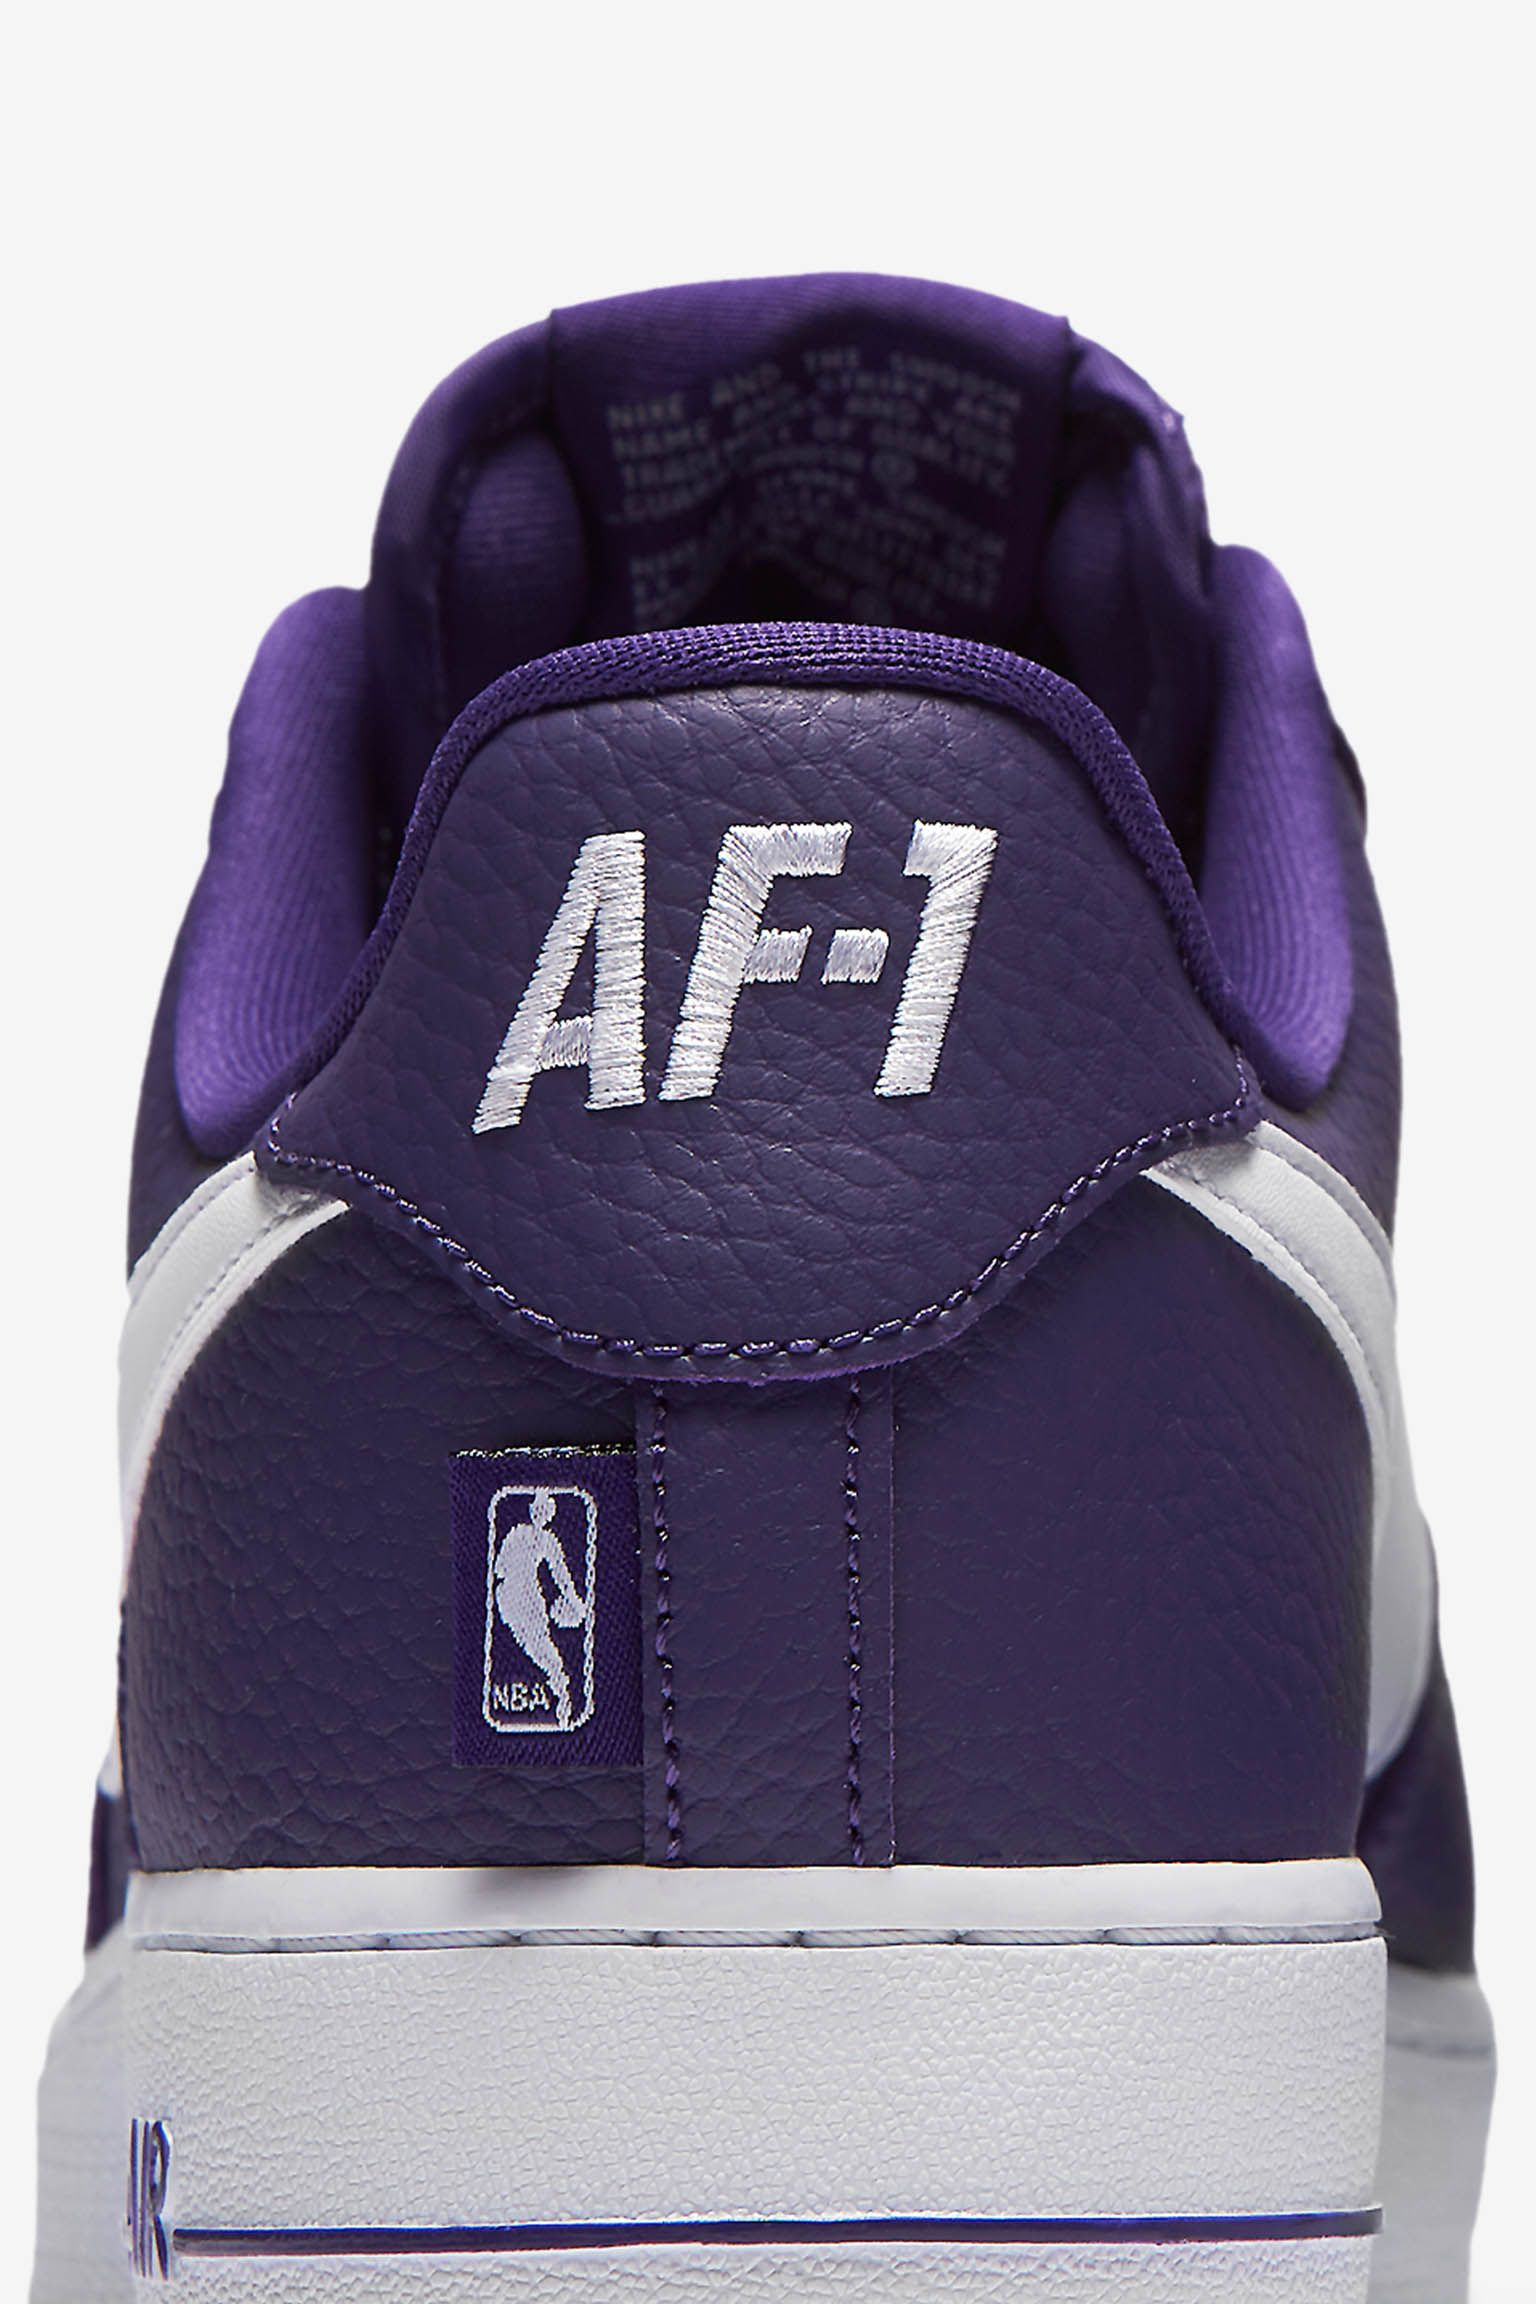 Nike AF-1 Low NBA 'Court Purple & White' Release Date. Nike SNKRS